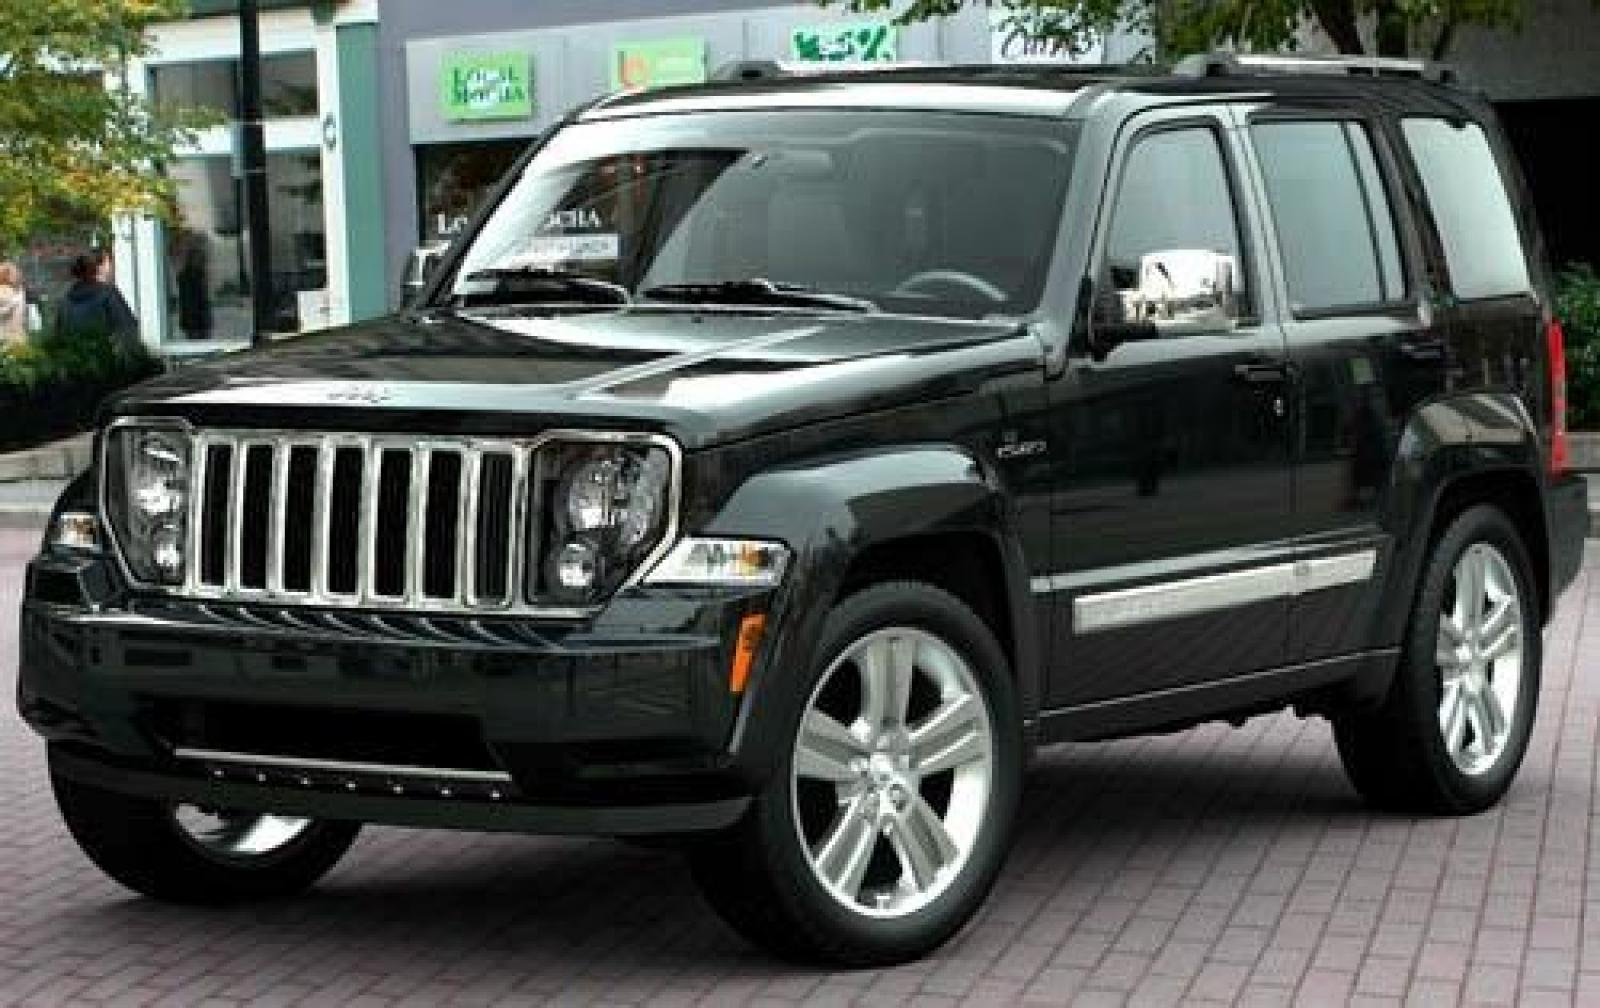 2012 jeep liberty information and photos zombiedrive. Black Bedroom Furniture Sets. Home Design Ideas